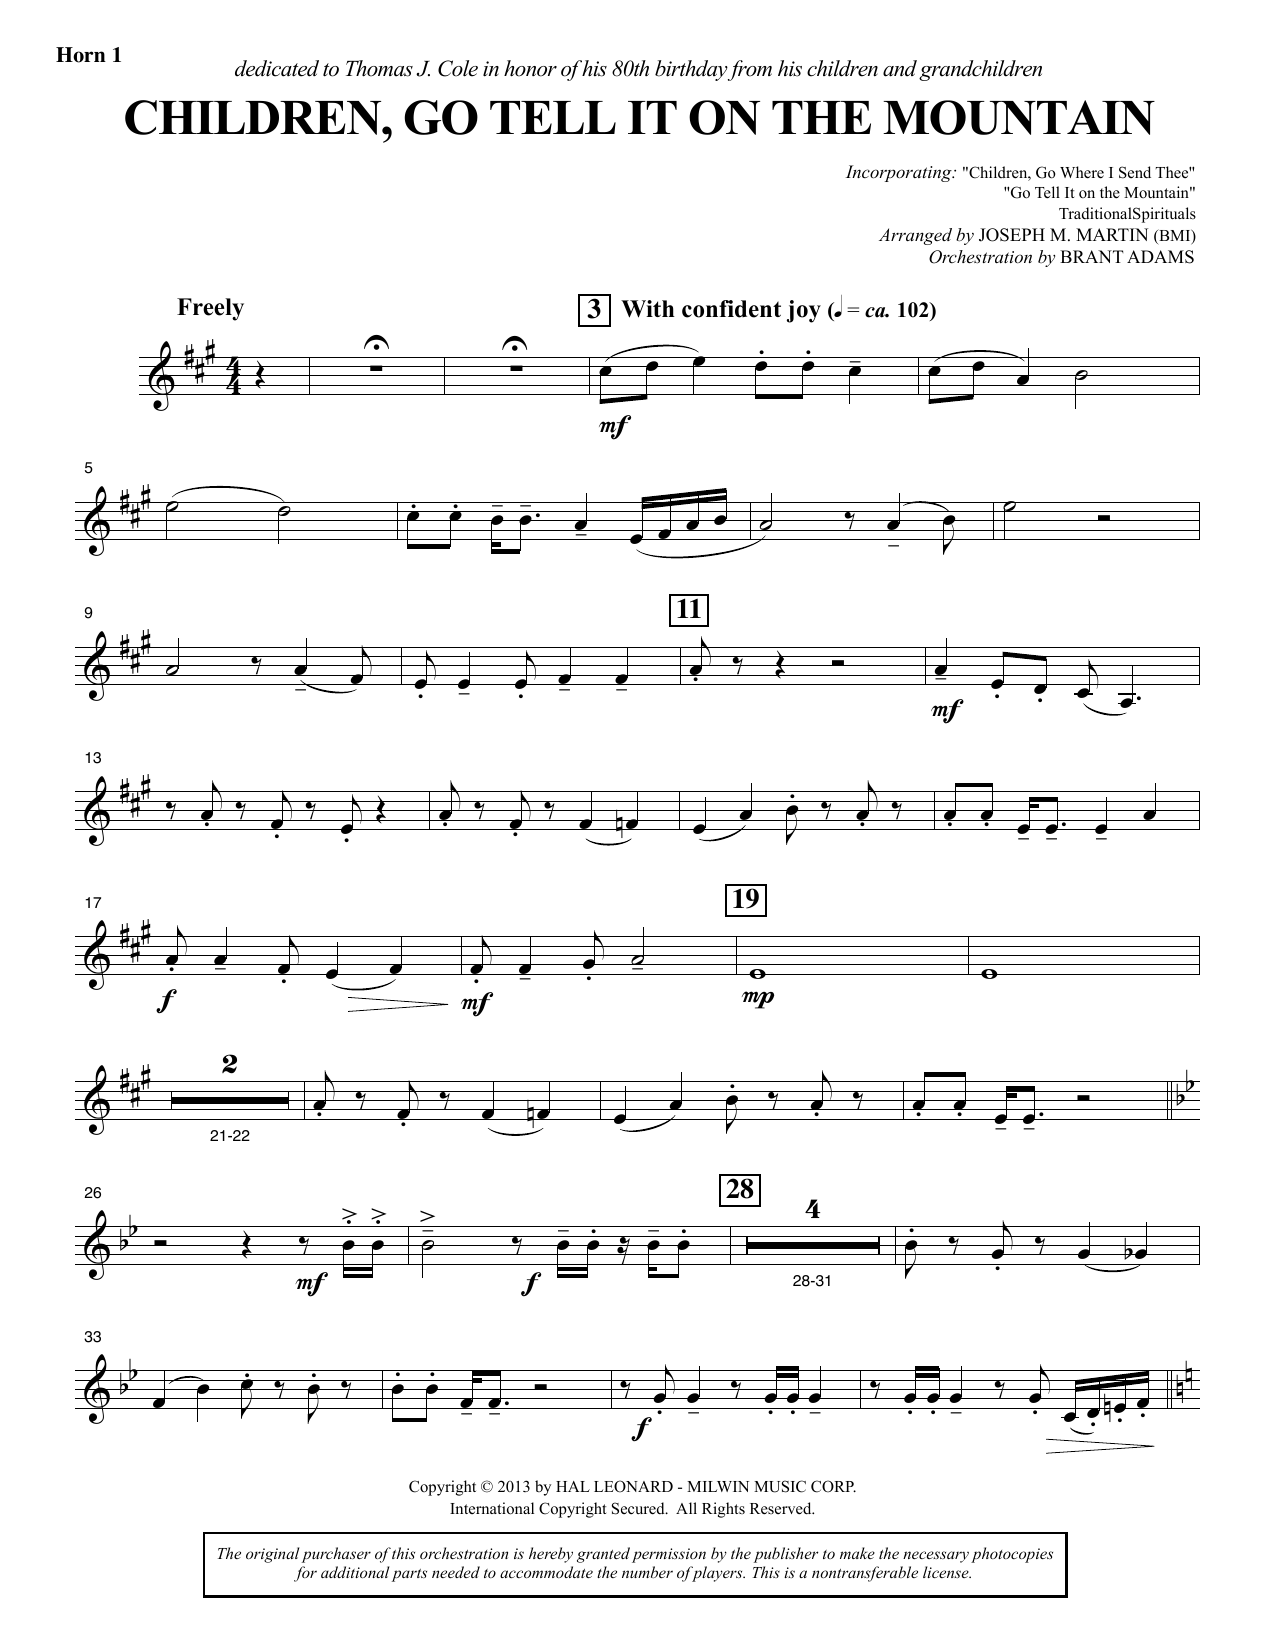 Joseph M. Martin Children, Go Tell It on the Mountain - F Horn 1 sheet music notes and chords. Download Printable PDF.